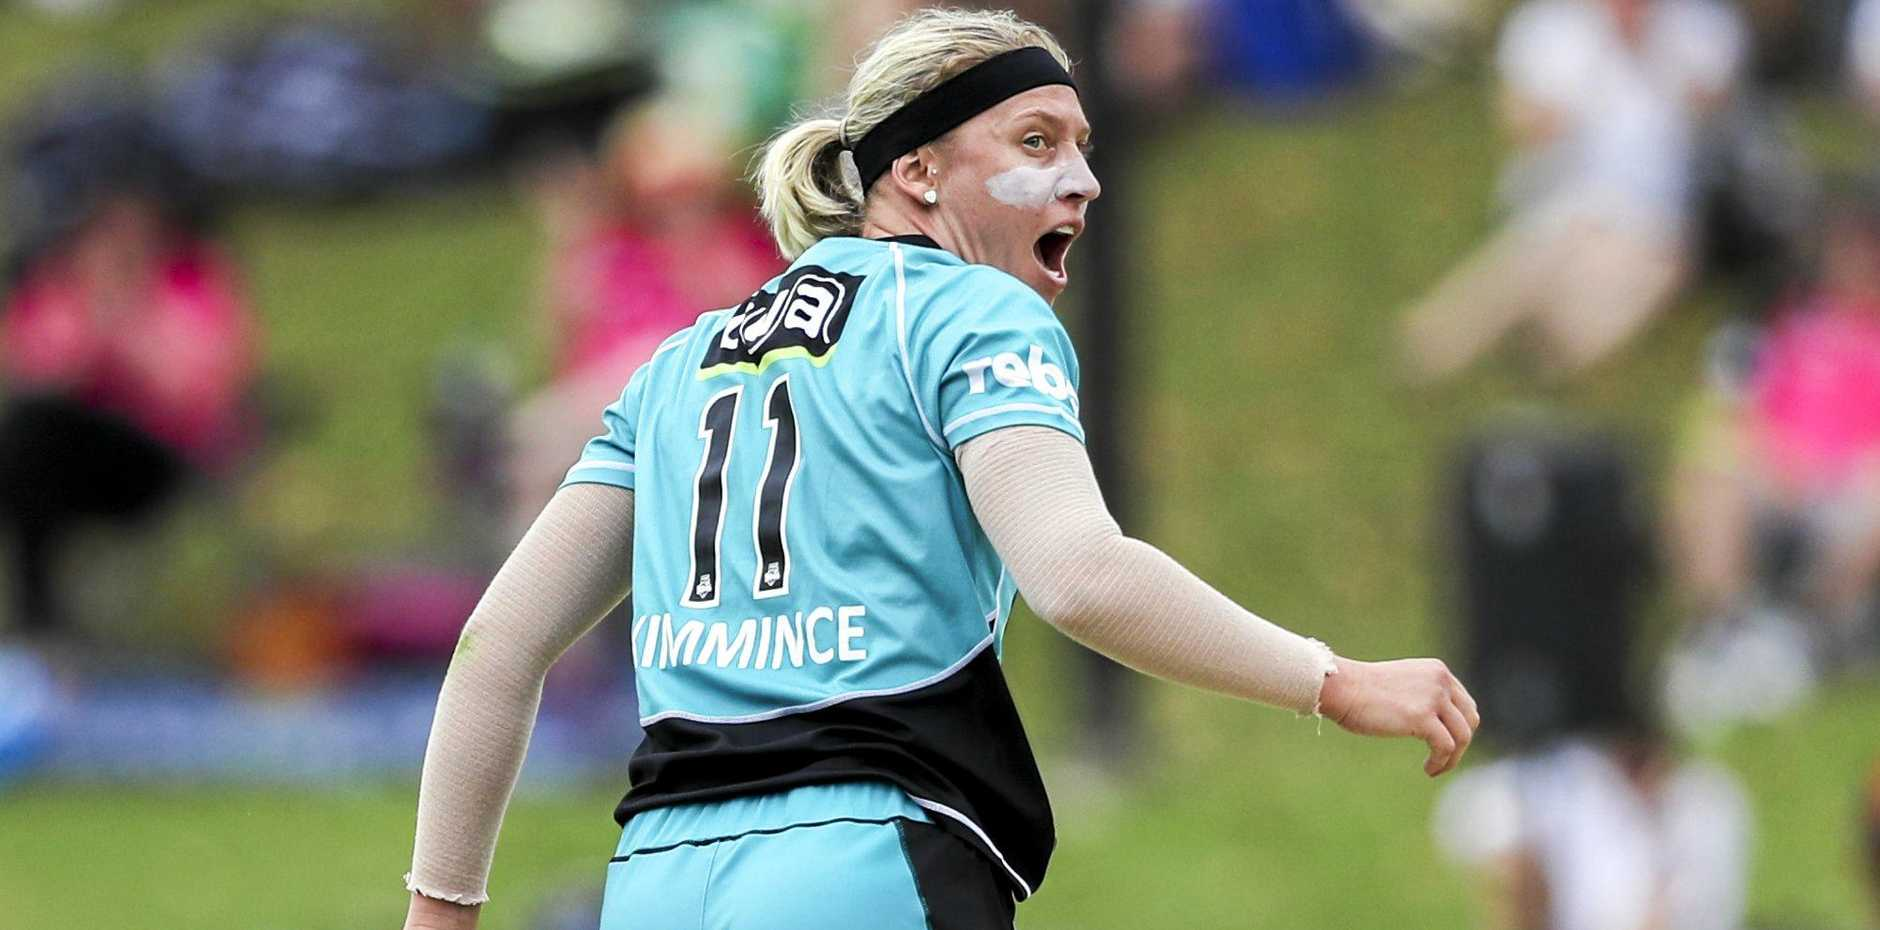 FUTURE STARS: Could the next star from the Darling Downs come through the pathway? Australian representative and Brisbane Heat all-rounder Delissa Kimmince hails from the Downs.